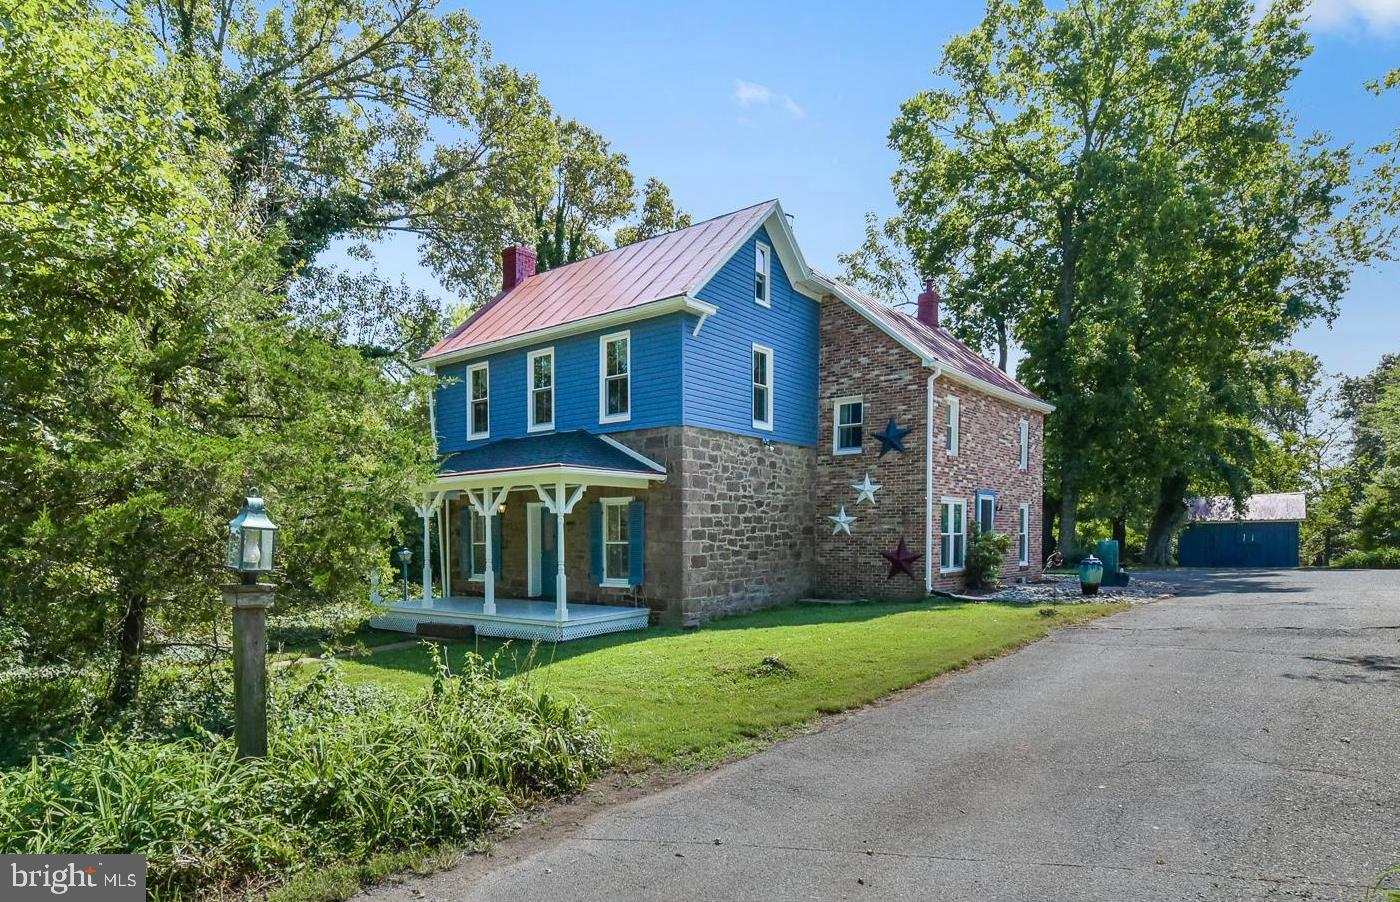 Open Sunday 9/22 from 12-2 PM! Historic home lovers and those looking for a property full of charm,